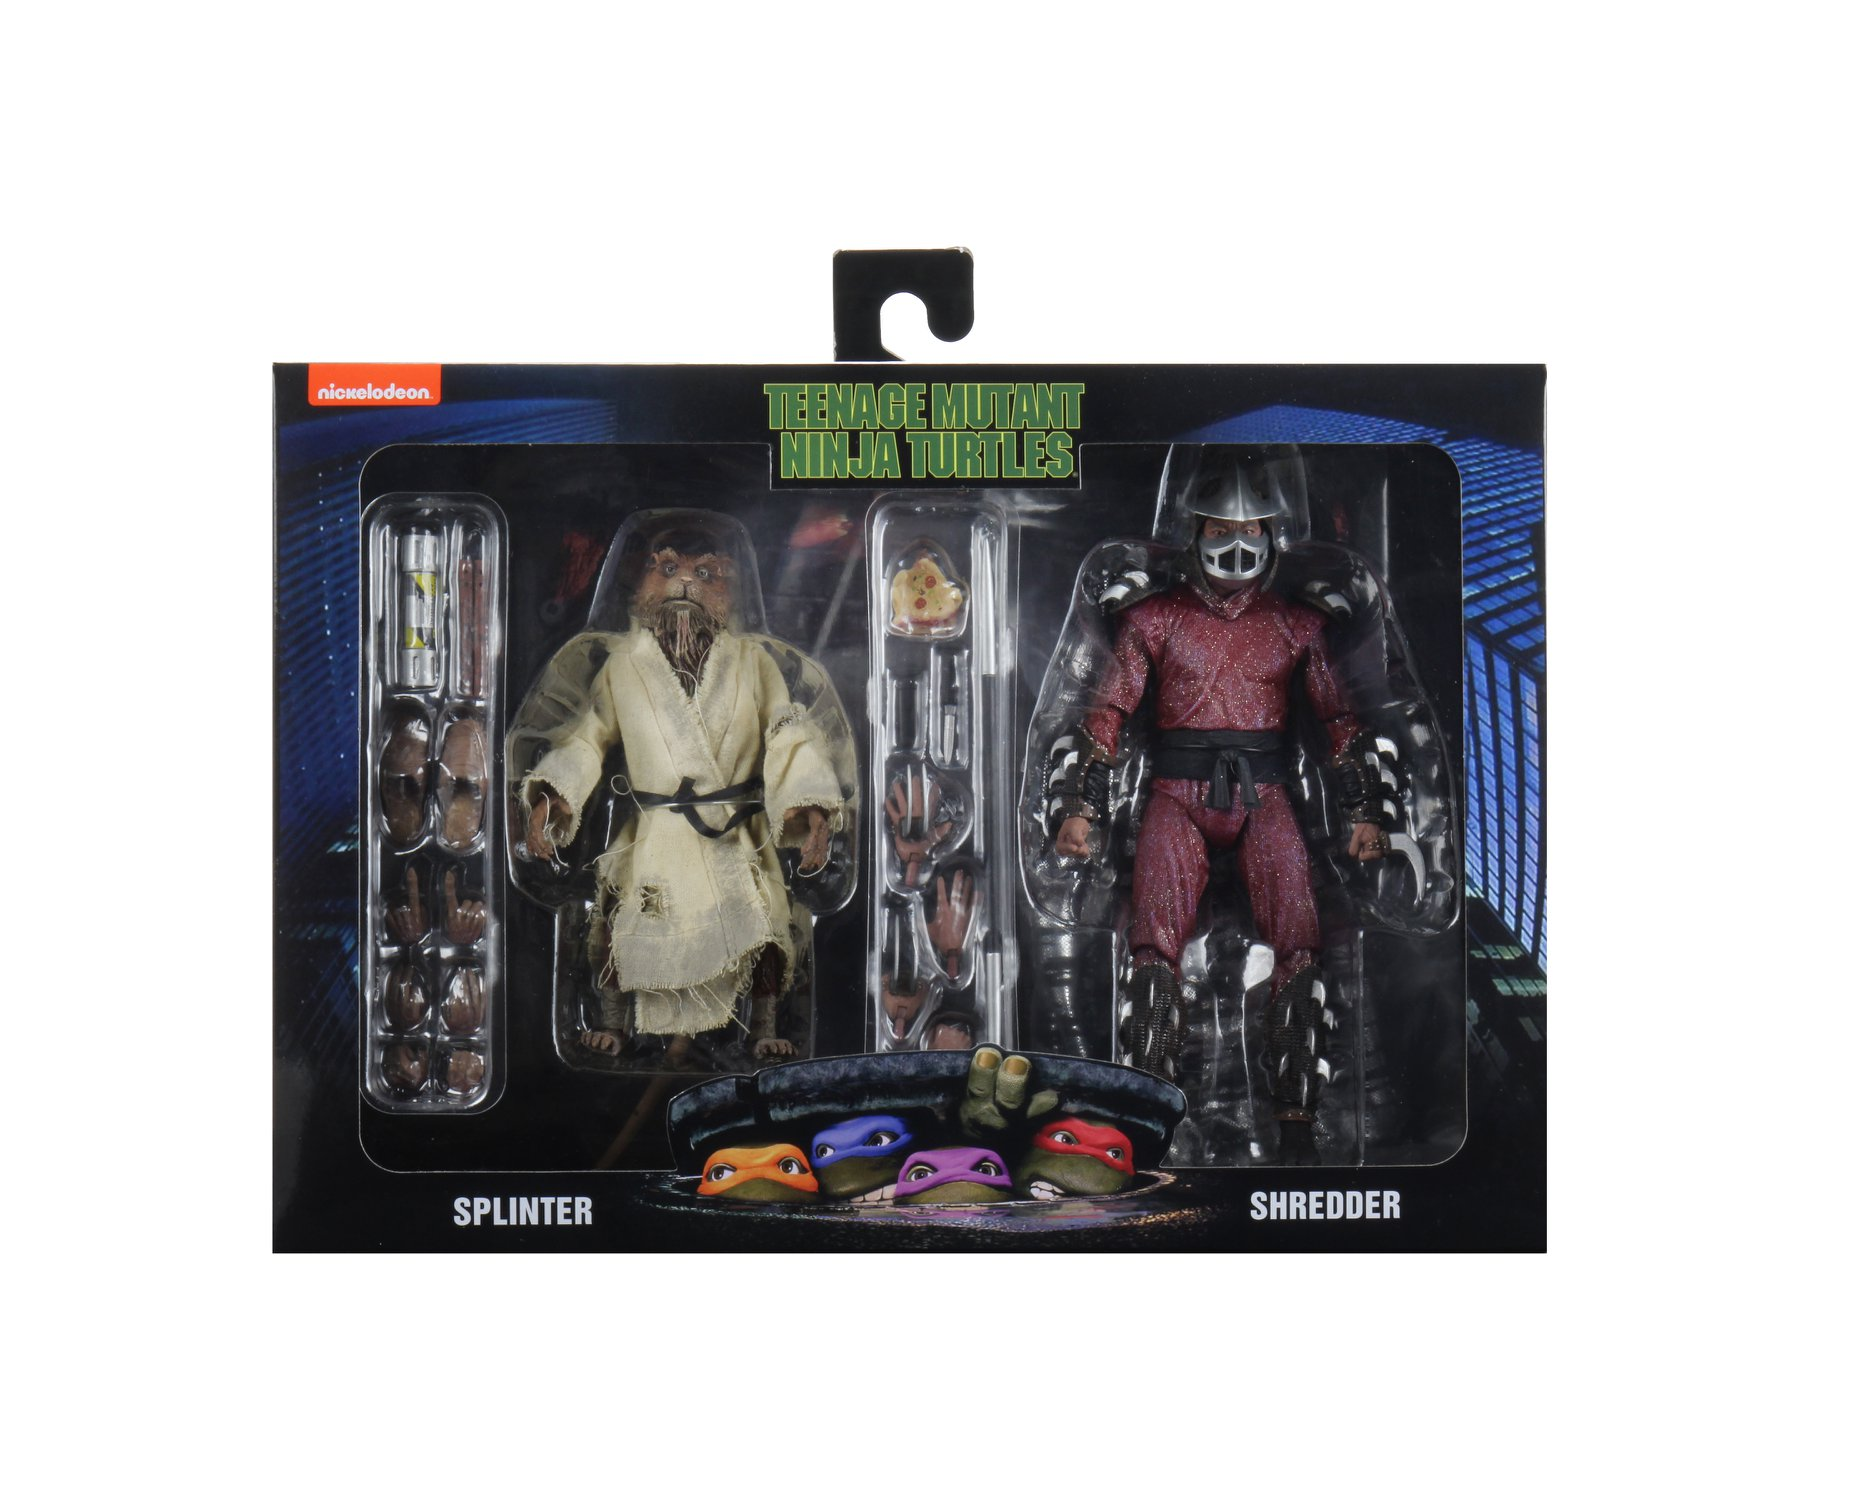 NECA Splinter and Shredder TMNT Movie 2 Pack 001